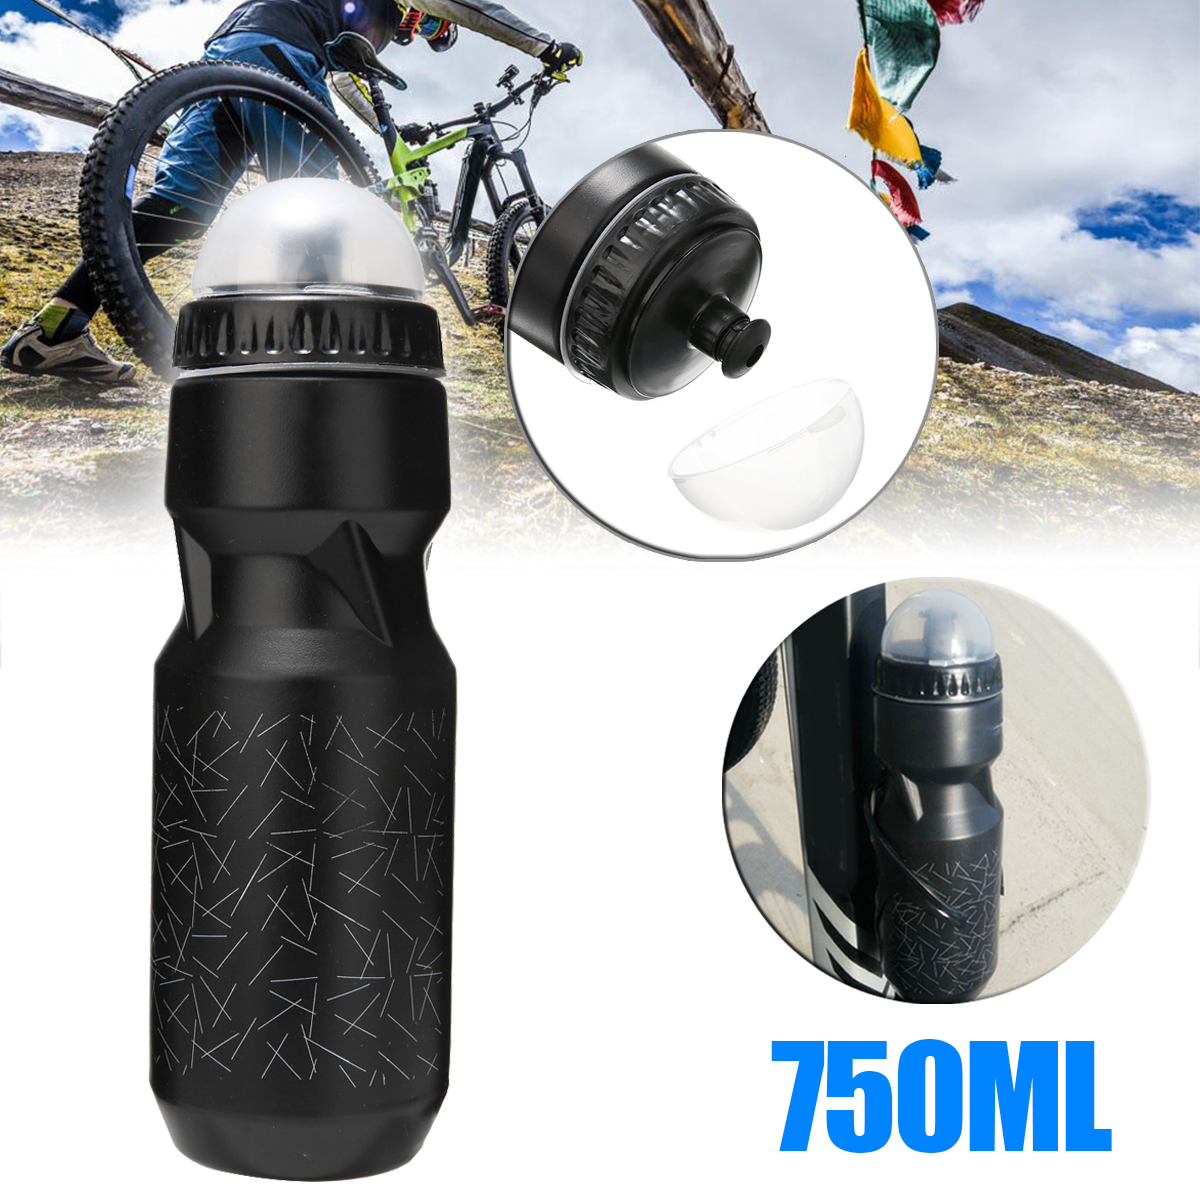 Outdoor Sport 750ml Portable Bicycle Water Bottle Outdoor Cycling Drinking Hiking Gym Water Bottle Cup Black High Quality